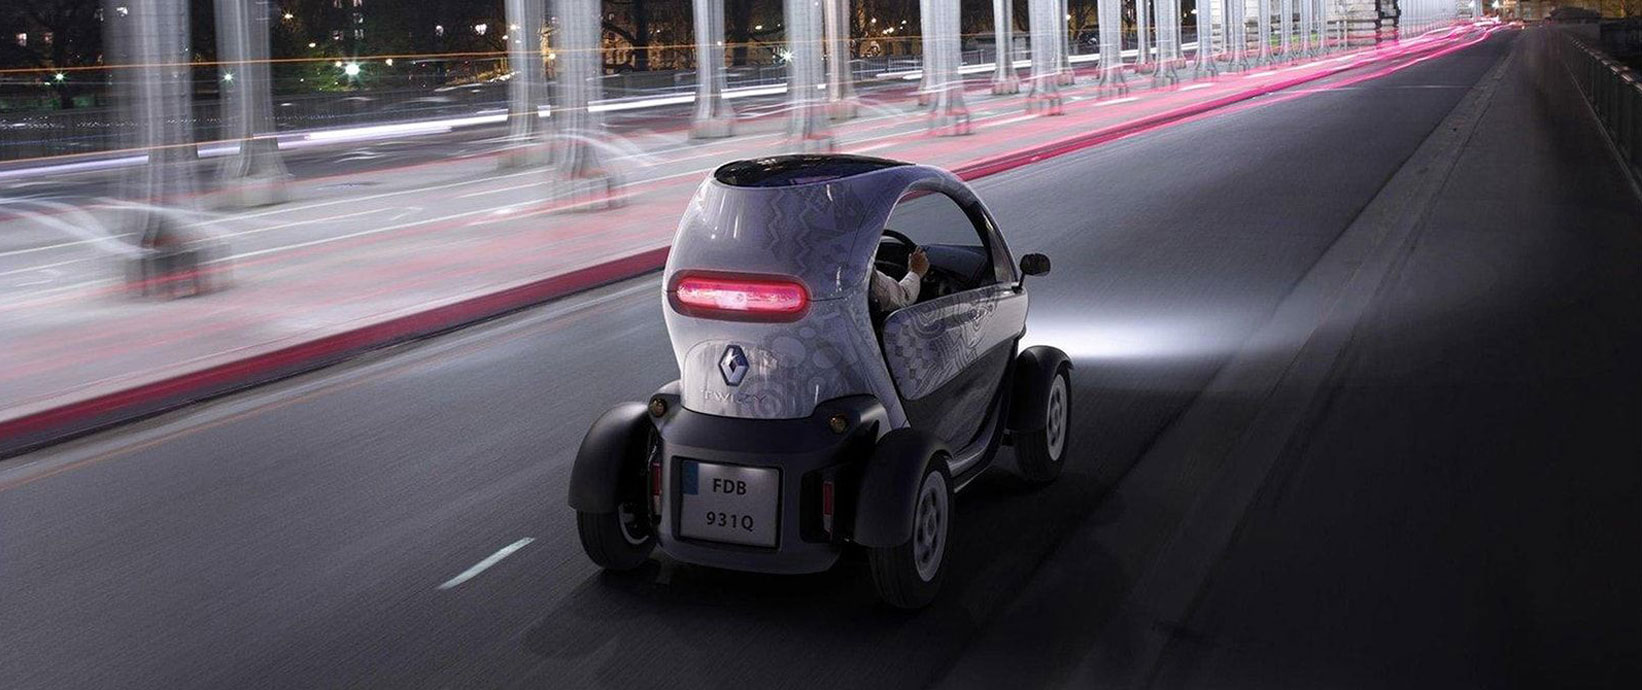 Renault, vehicles for more breathable air